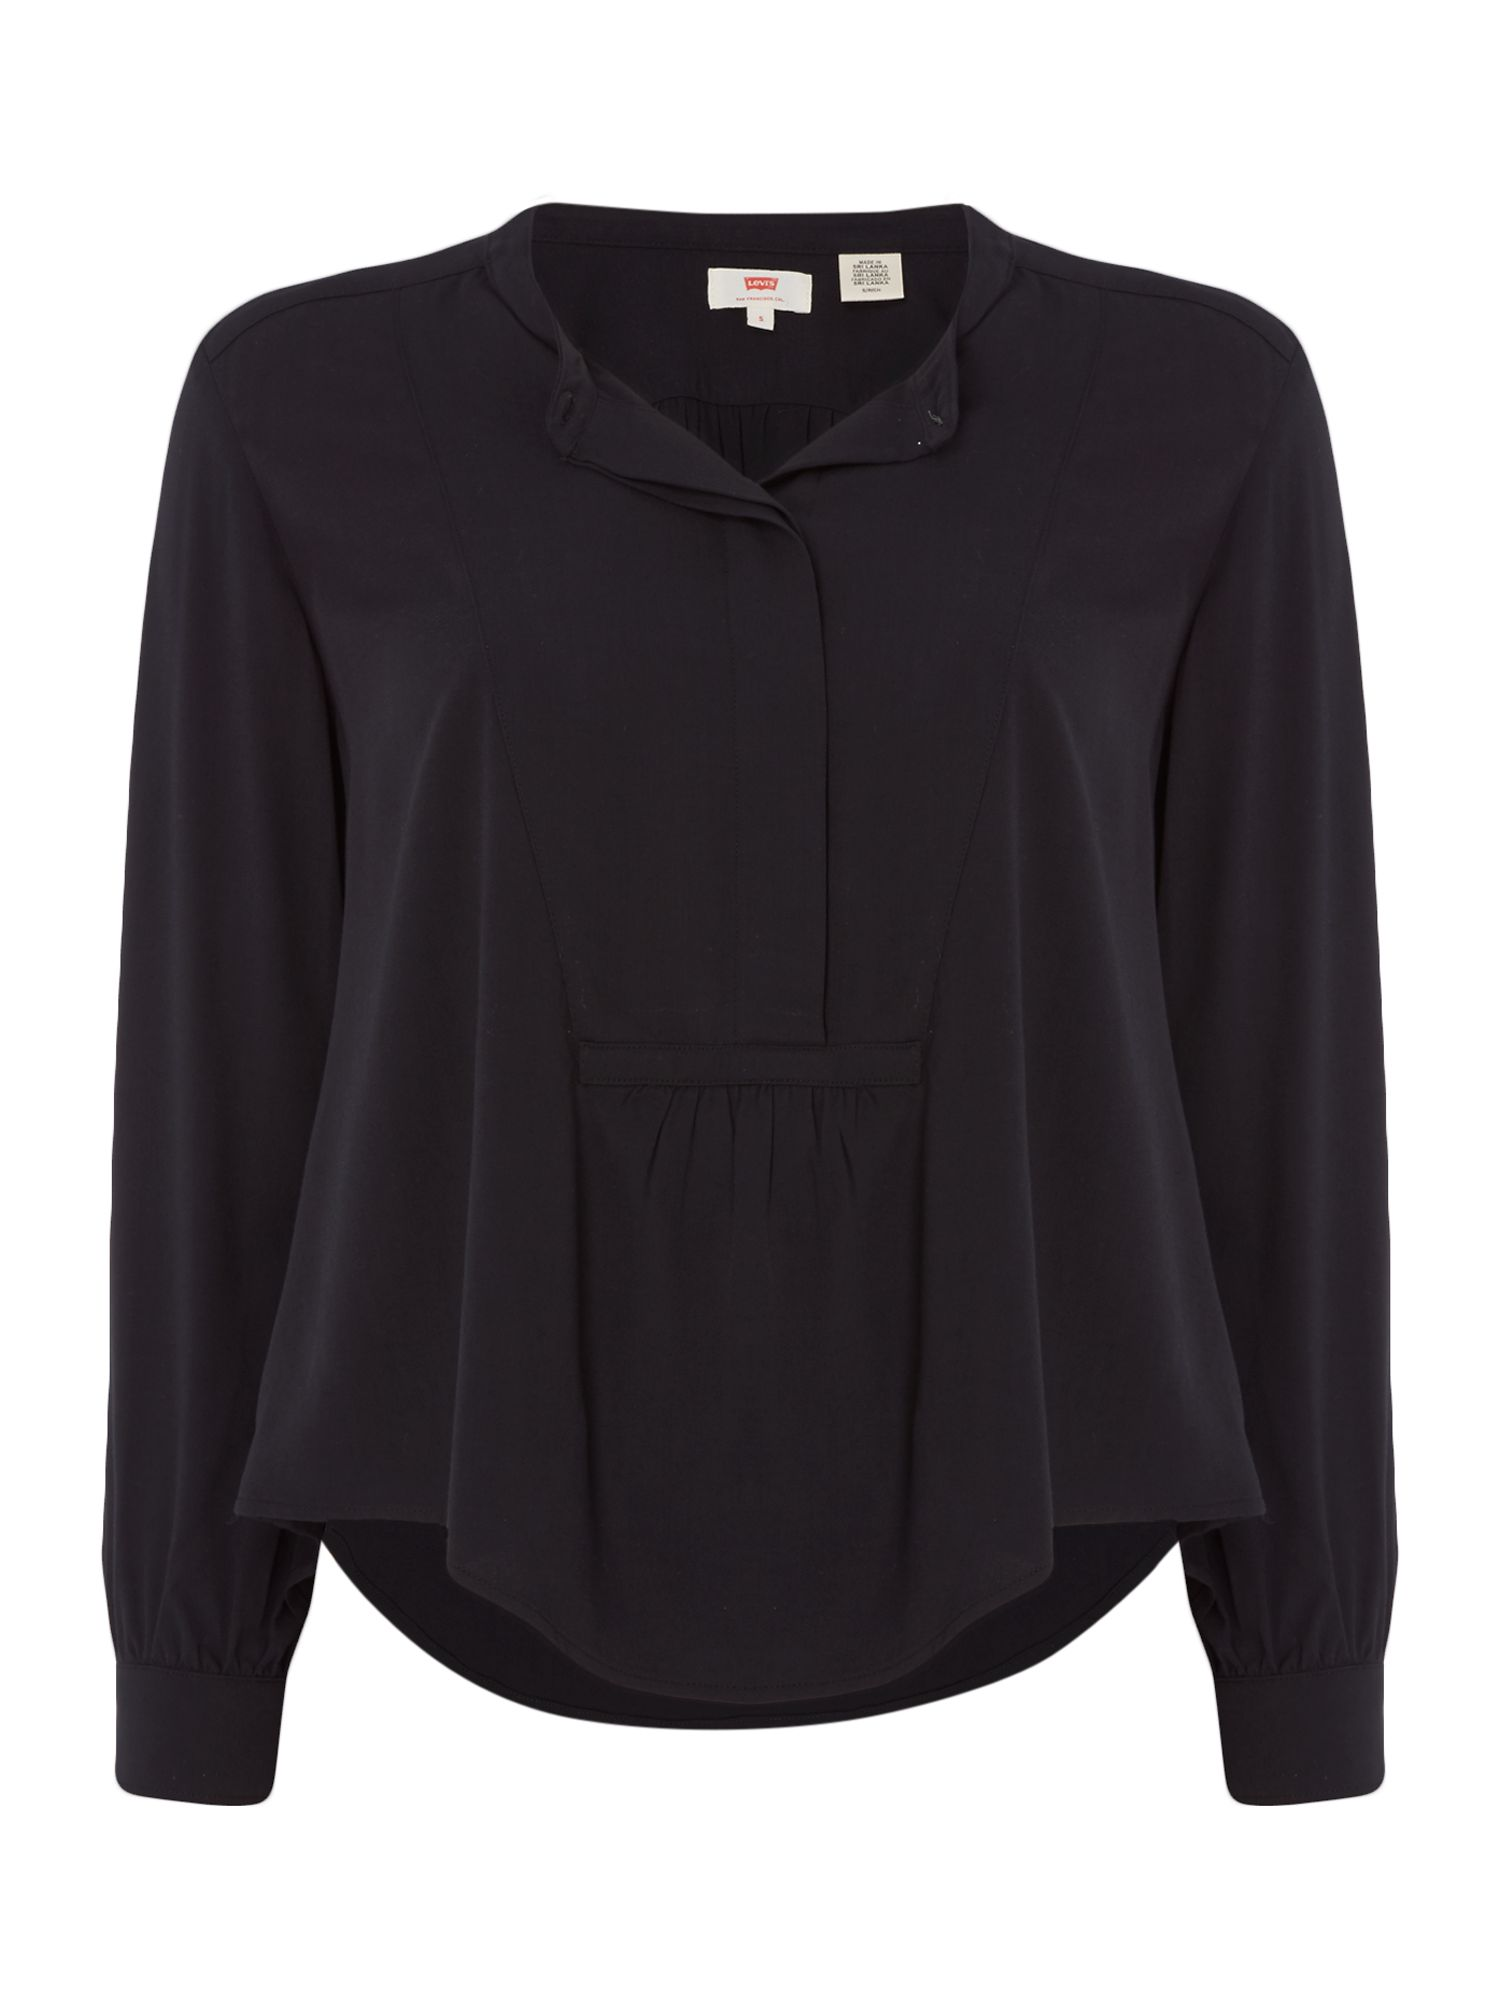 Levi's Long sleeves Blouse with collar, Black